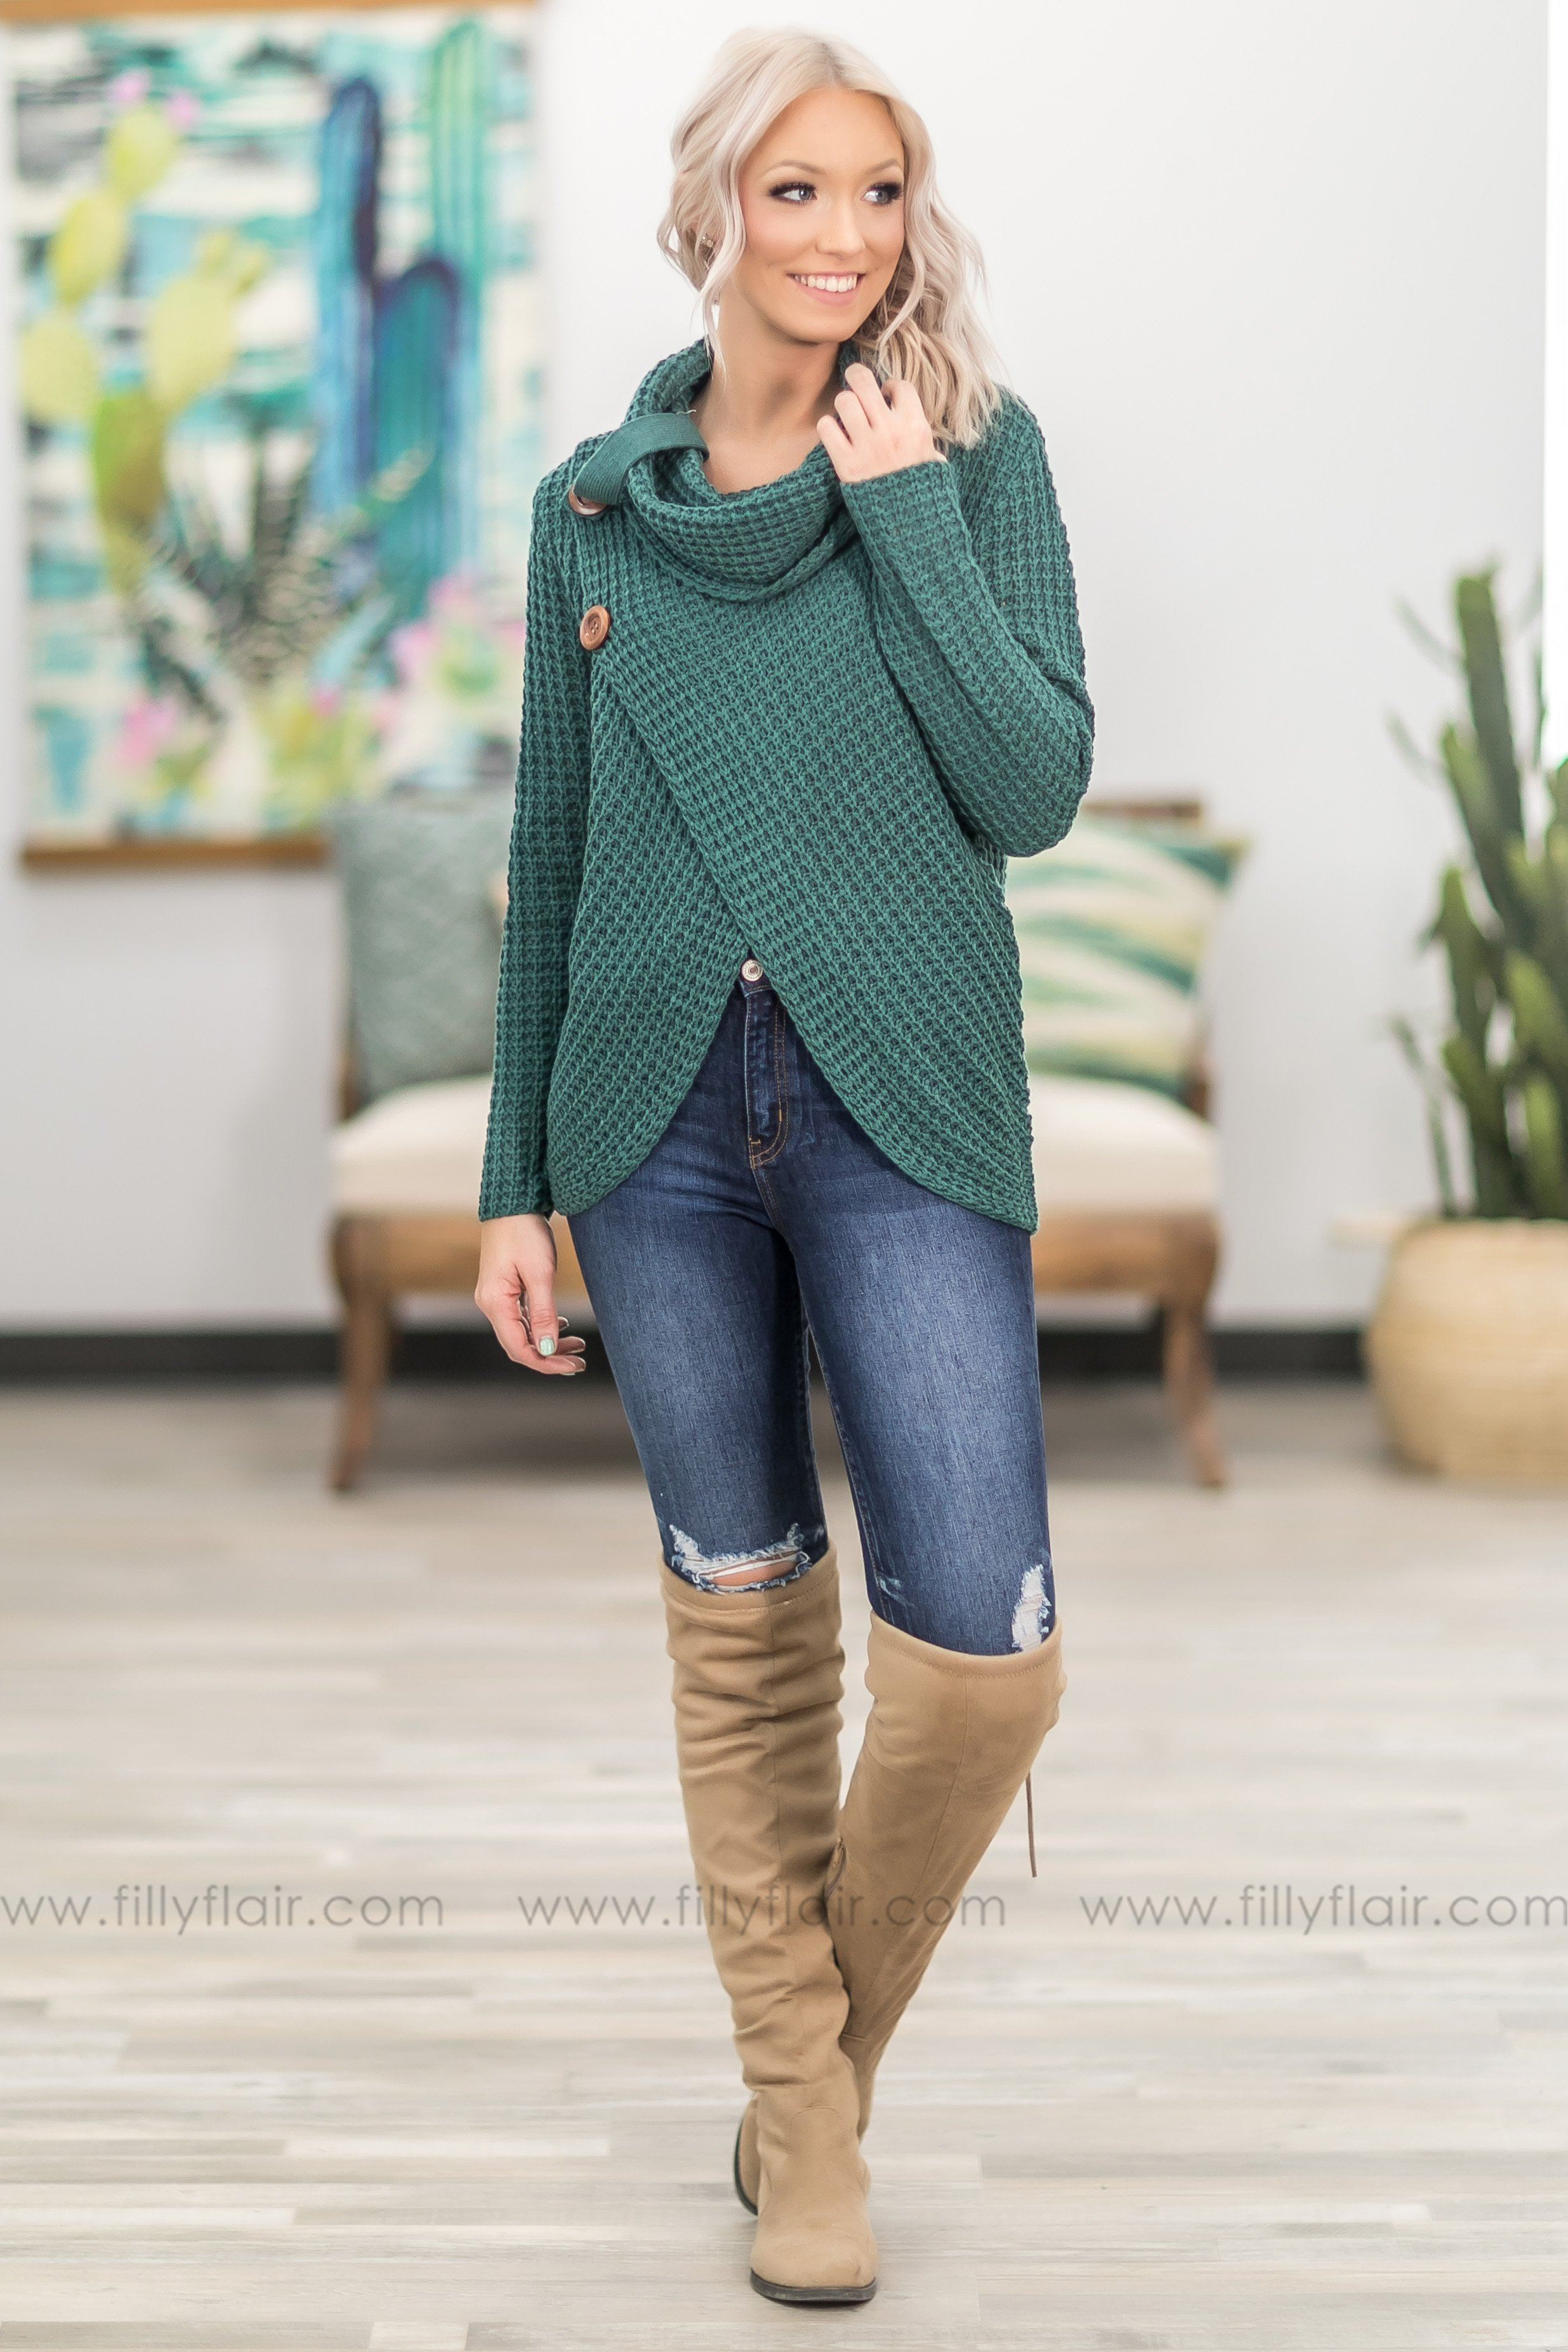 All the Way to You Cowl Neck Button Sweater in Teal - Filly Flair